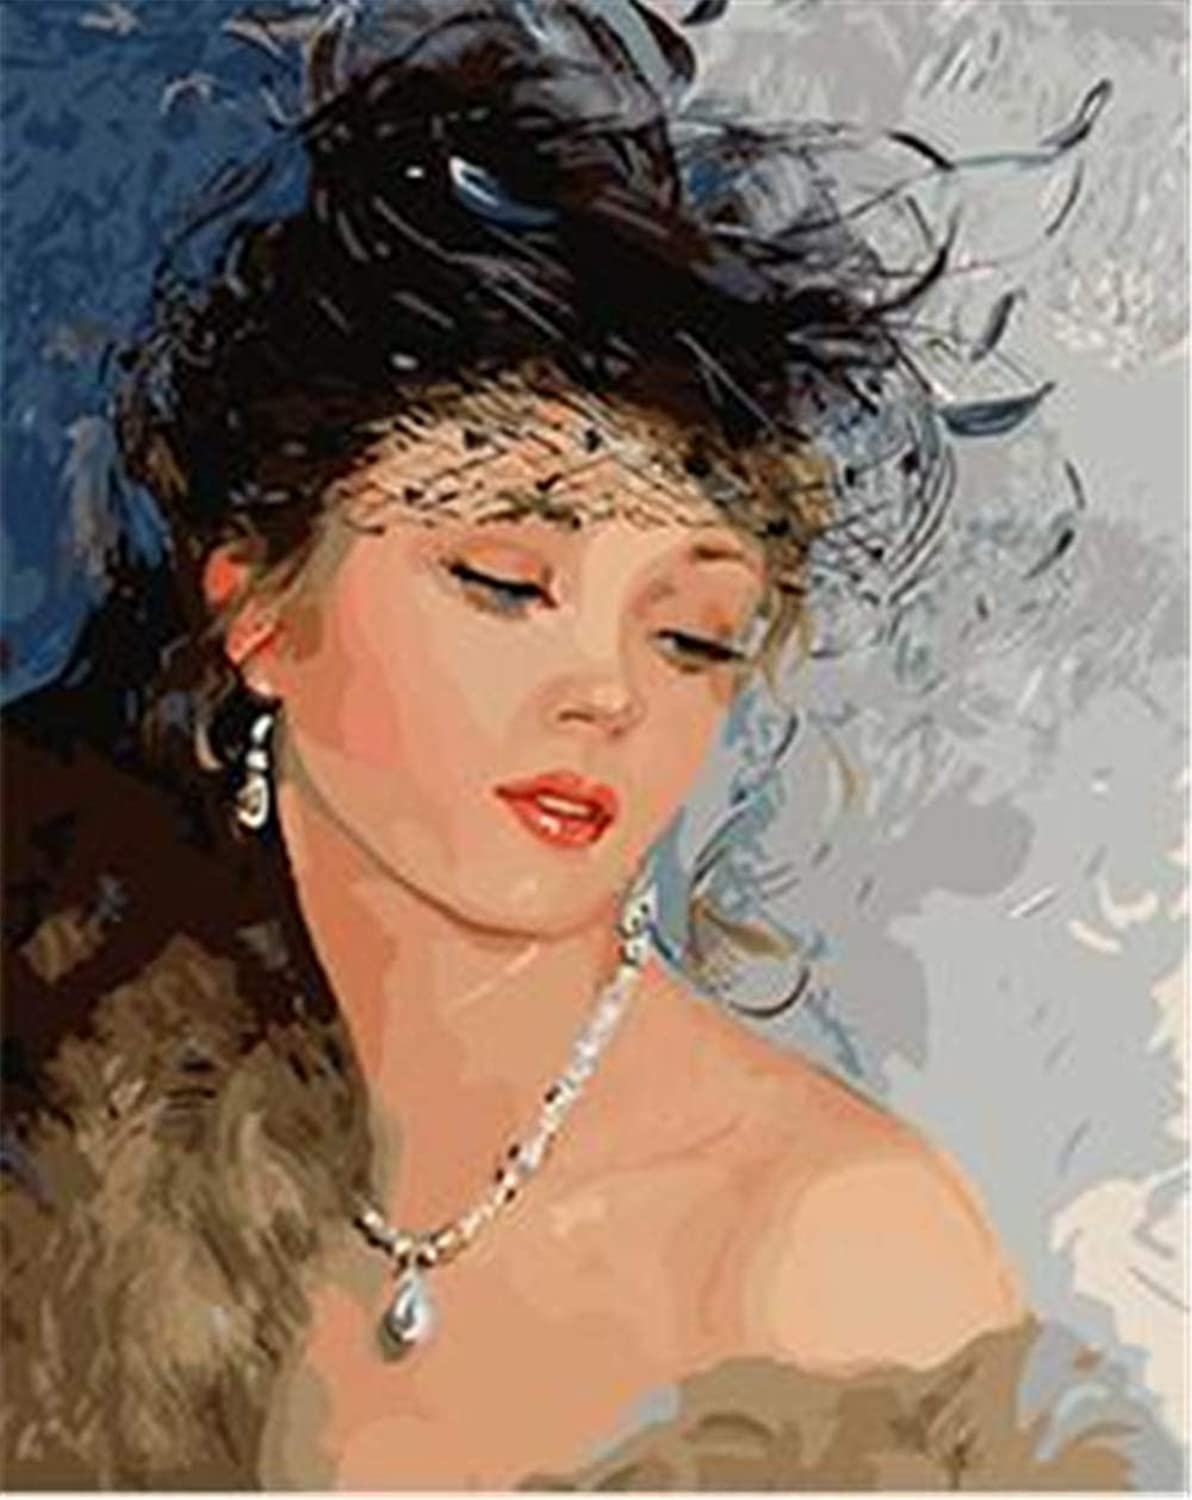 DIY Oil Paint by Number Kit for Adults Beginner 16x20 Inch - Attractive Lady,Drawing with Brushes Living Room Decor Decorations Gifts (Framed)